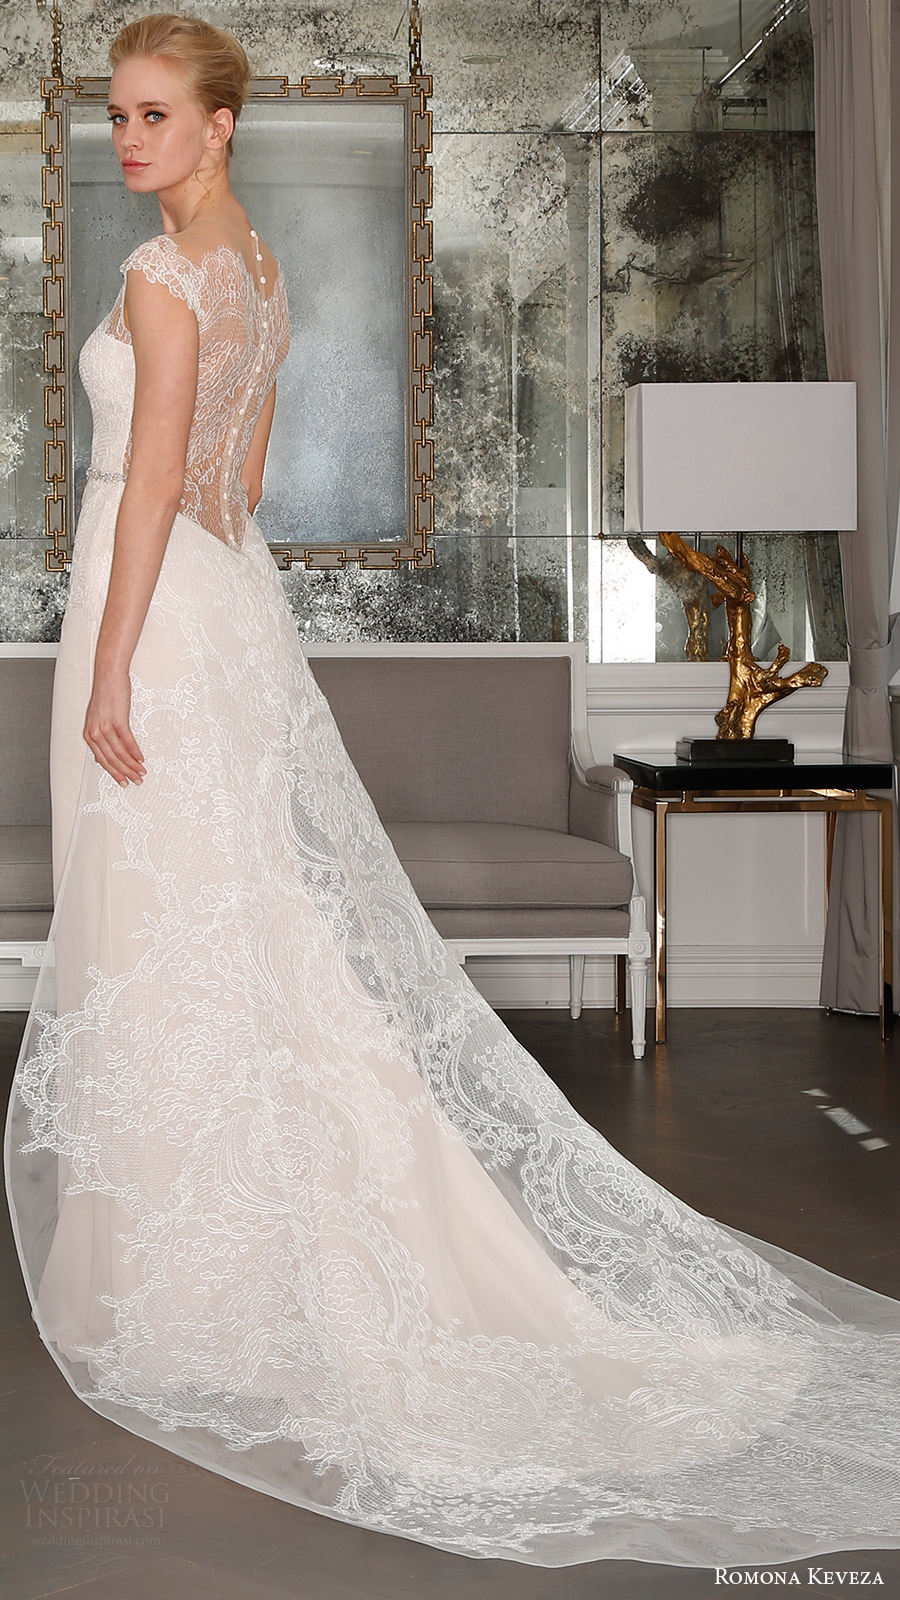 romona keveza bridal spring 2017 illusion cap sleeves sweetheart deep vneck sheath wedding dress (rk7405) bv sheer back detachable train